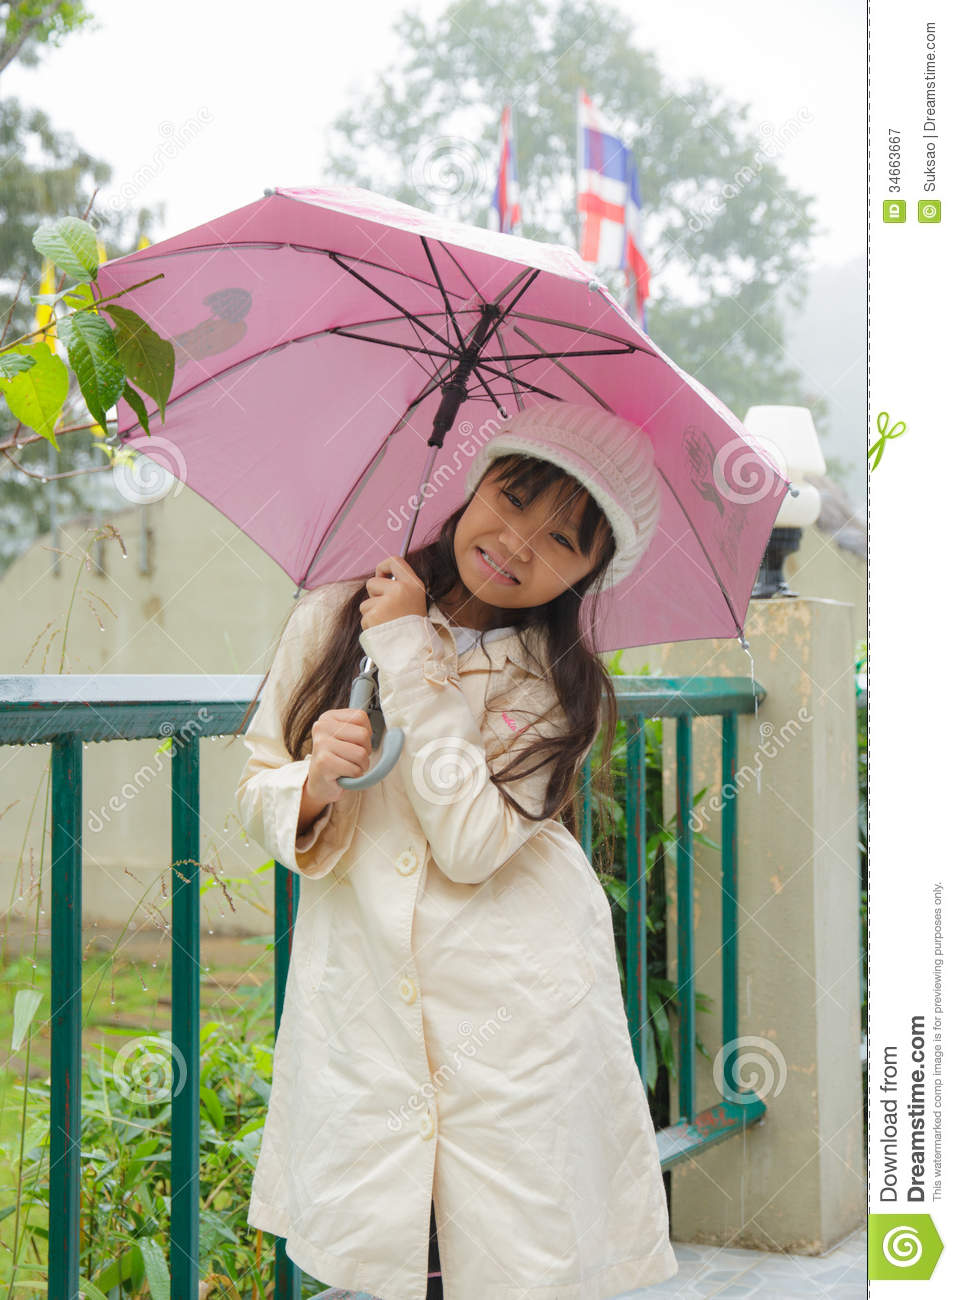 Girl and umbrella stock image. Image of background ...